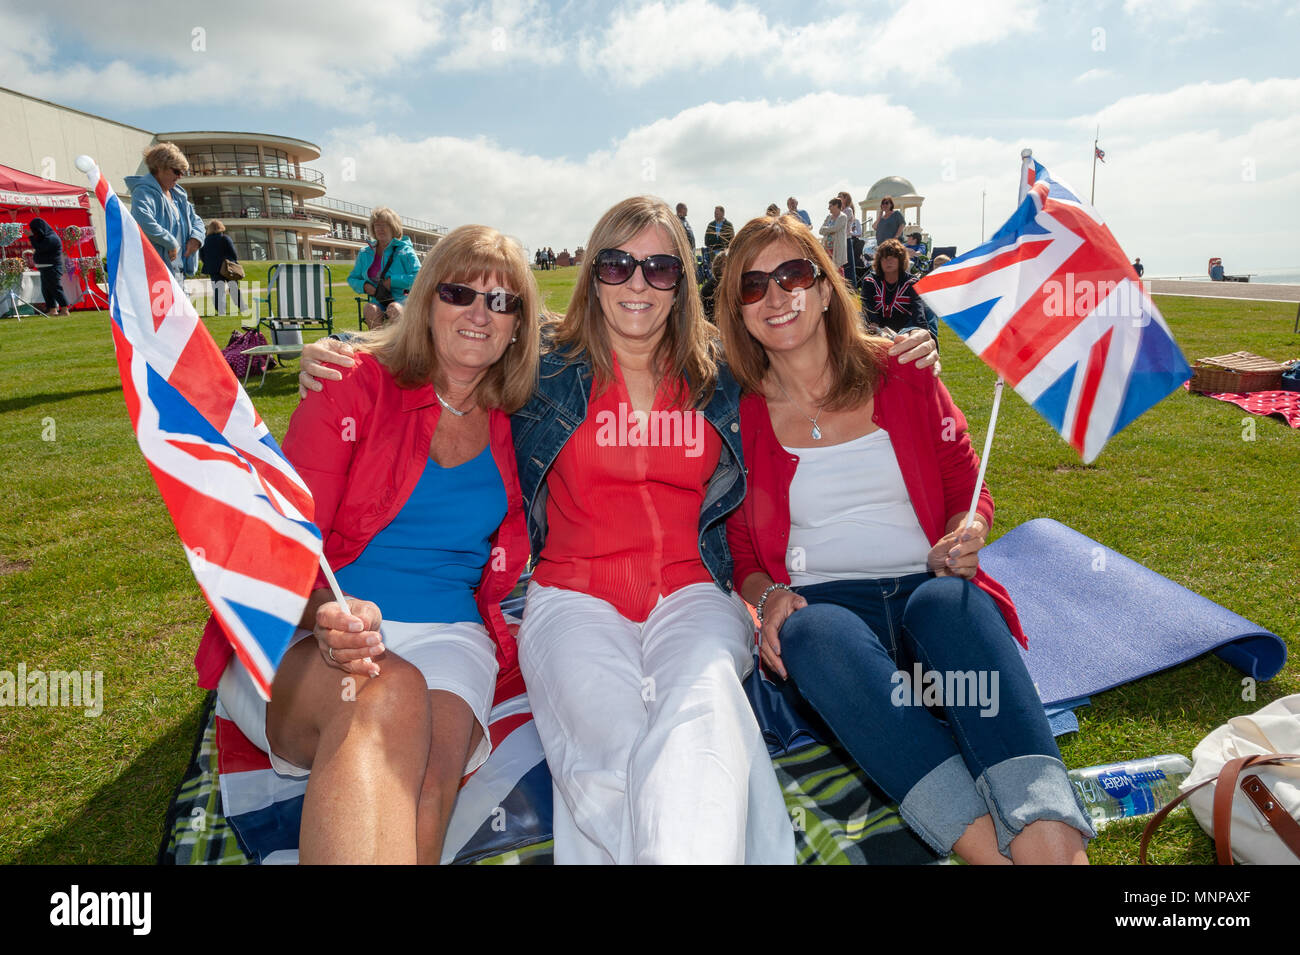 People wave Union Jack flags and celebrate Prince Harry and Meghan Markle's wedding at a Royal wedding event on the seafront in Bexhill On Sea, East Sussex, UK, England. Stock Photo